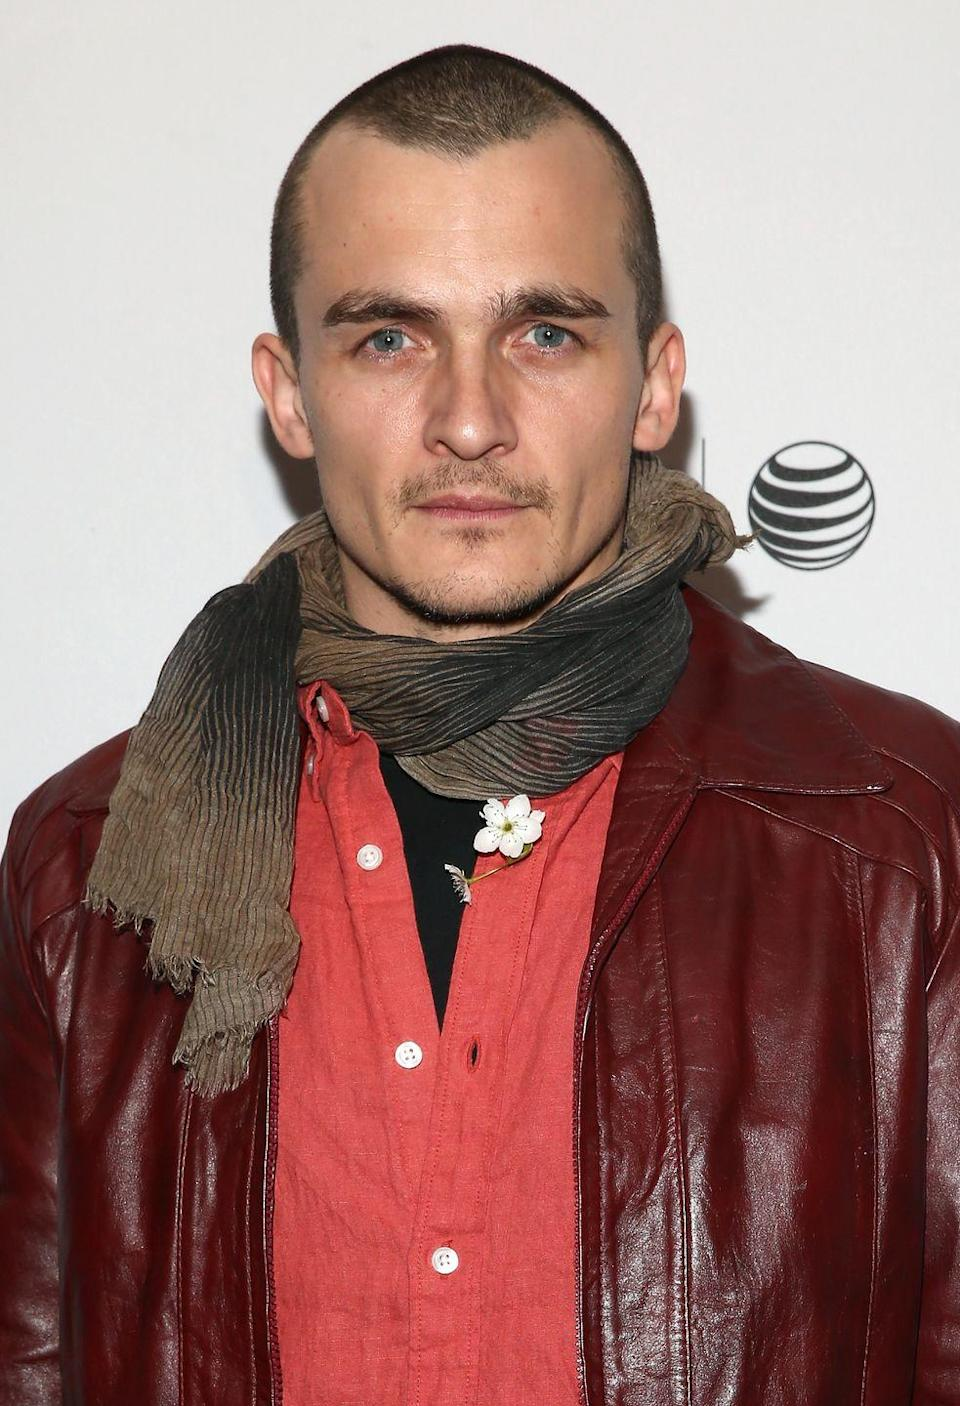 <p>Rupert Friend looked striking different when he buzzed off his long strands for his role in <em>Hitman: Agent 47</em>. The hairstyle was essential to his character in the action thriller (a reboot of 2007's <em>Hitman</em>) so Friend decided to try the bold look for real. </p>